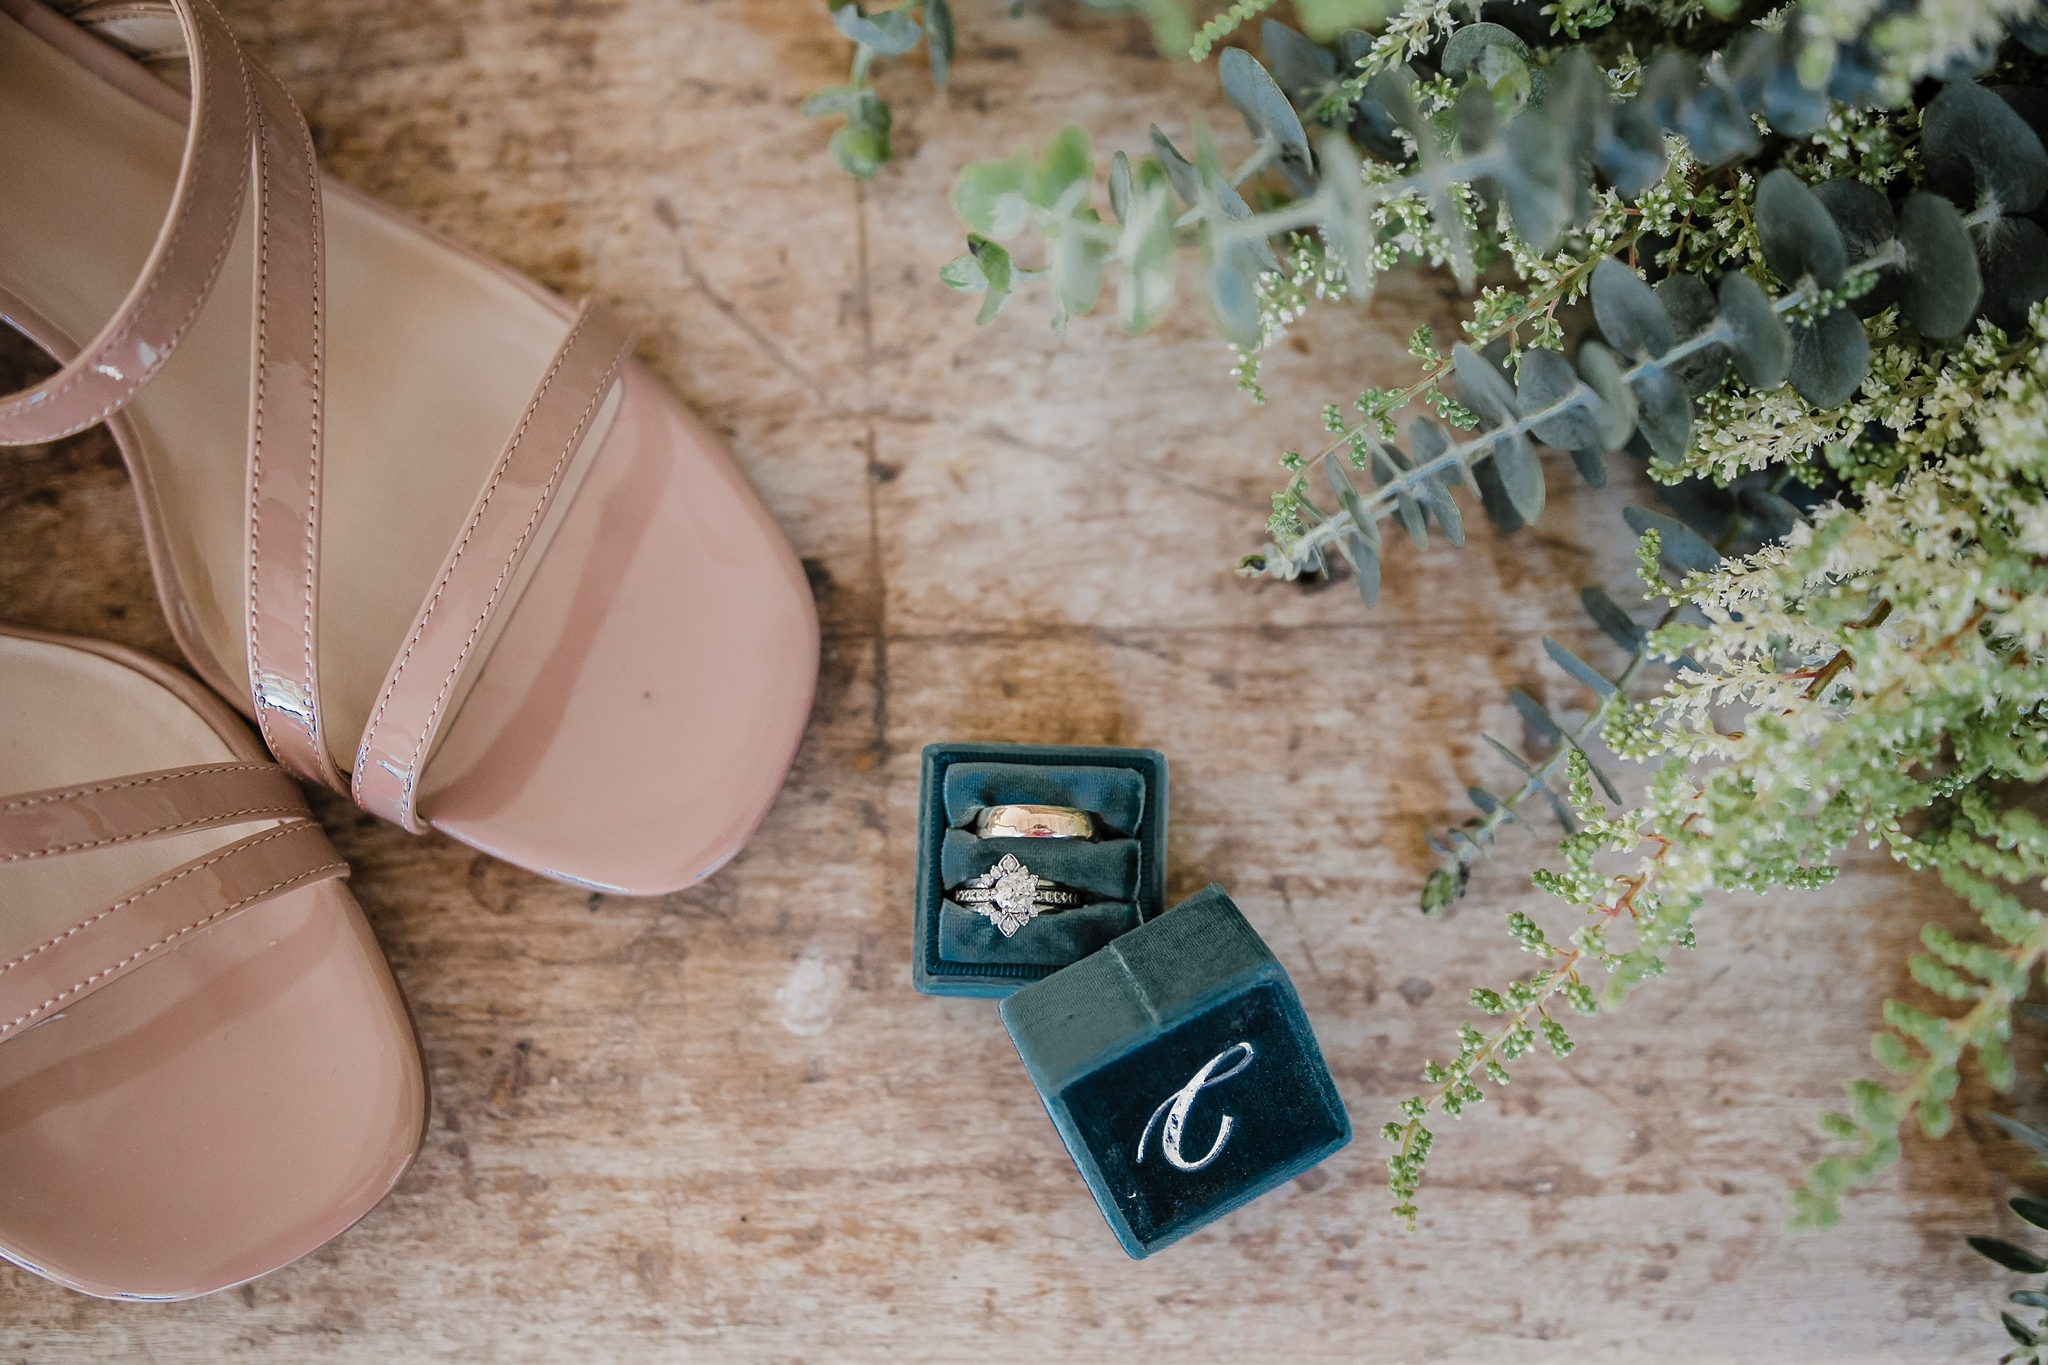 Alicia+lucia+photography+-+albuquerque+wedding+photographer+-+santa+fe+wedding+photography+-+new+mexico+wedding+photographer+-+new+mexico+wedding+-+new+mexico+wedding+-+colorado+wedding+-+bridal+shoes+-+bridal+inspo_0008.jpg